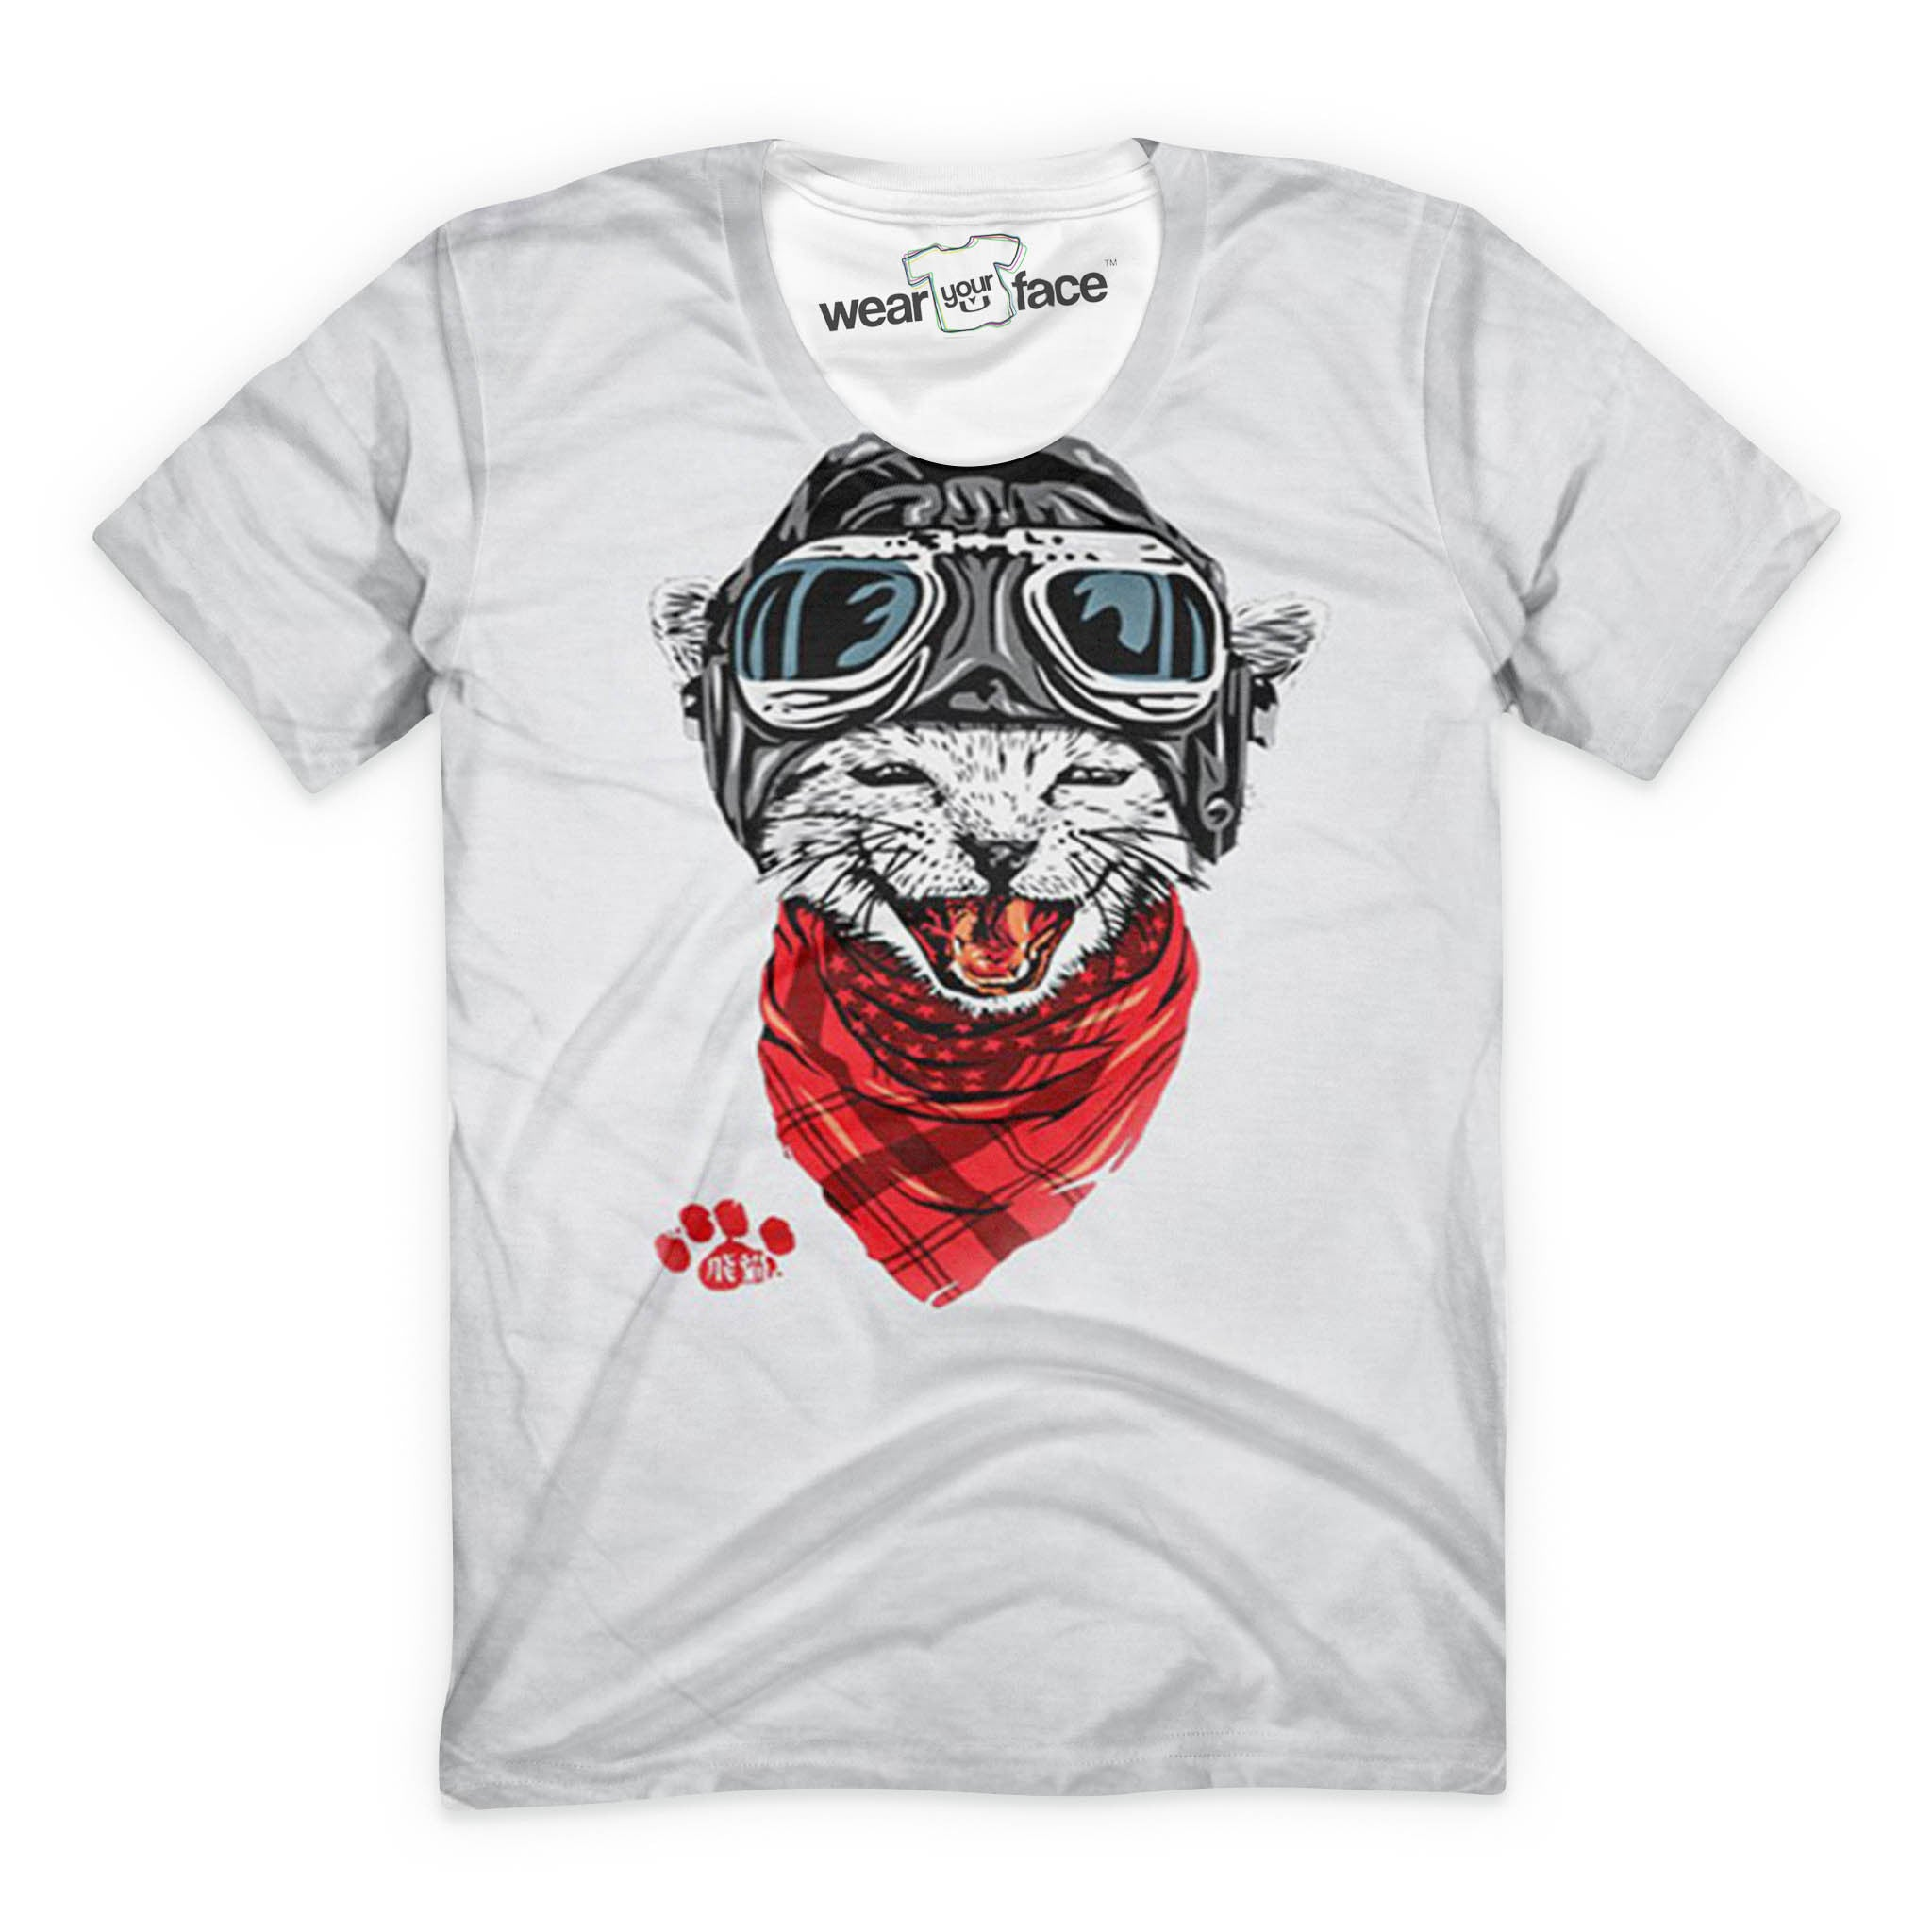 The Kitty Pilot T-Shirt